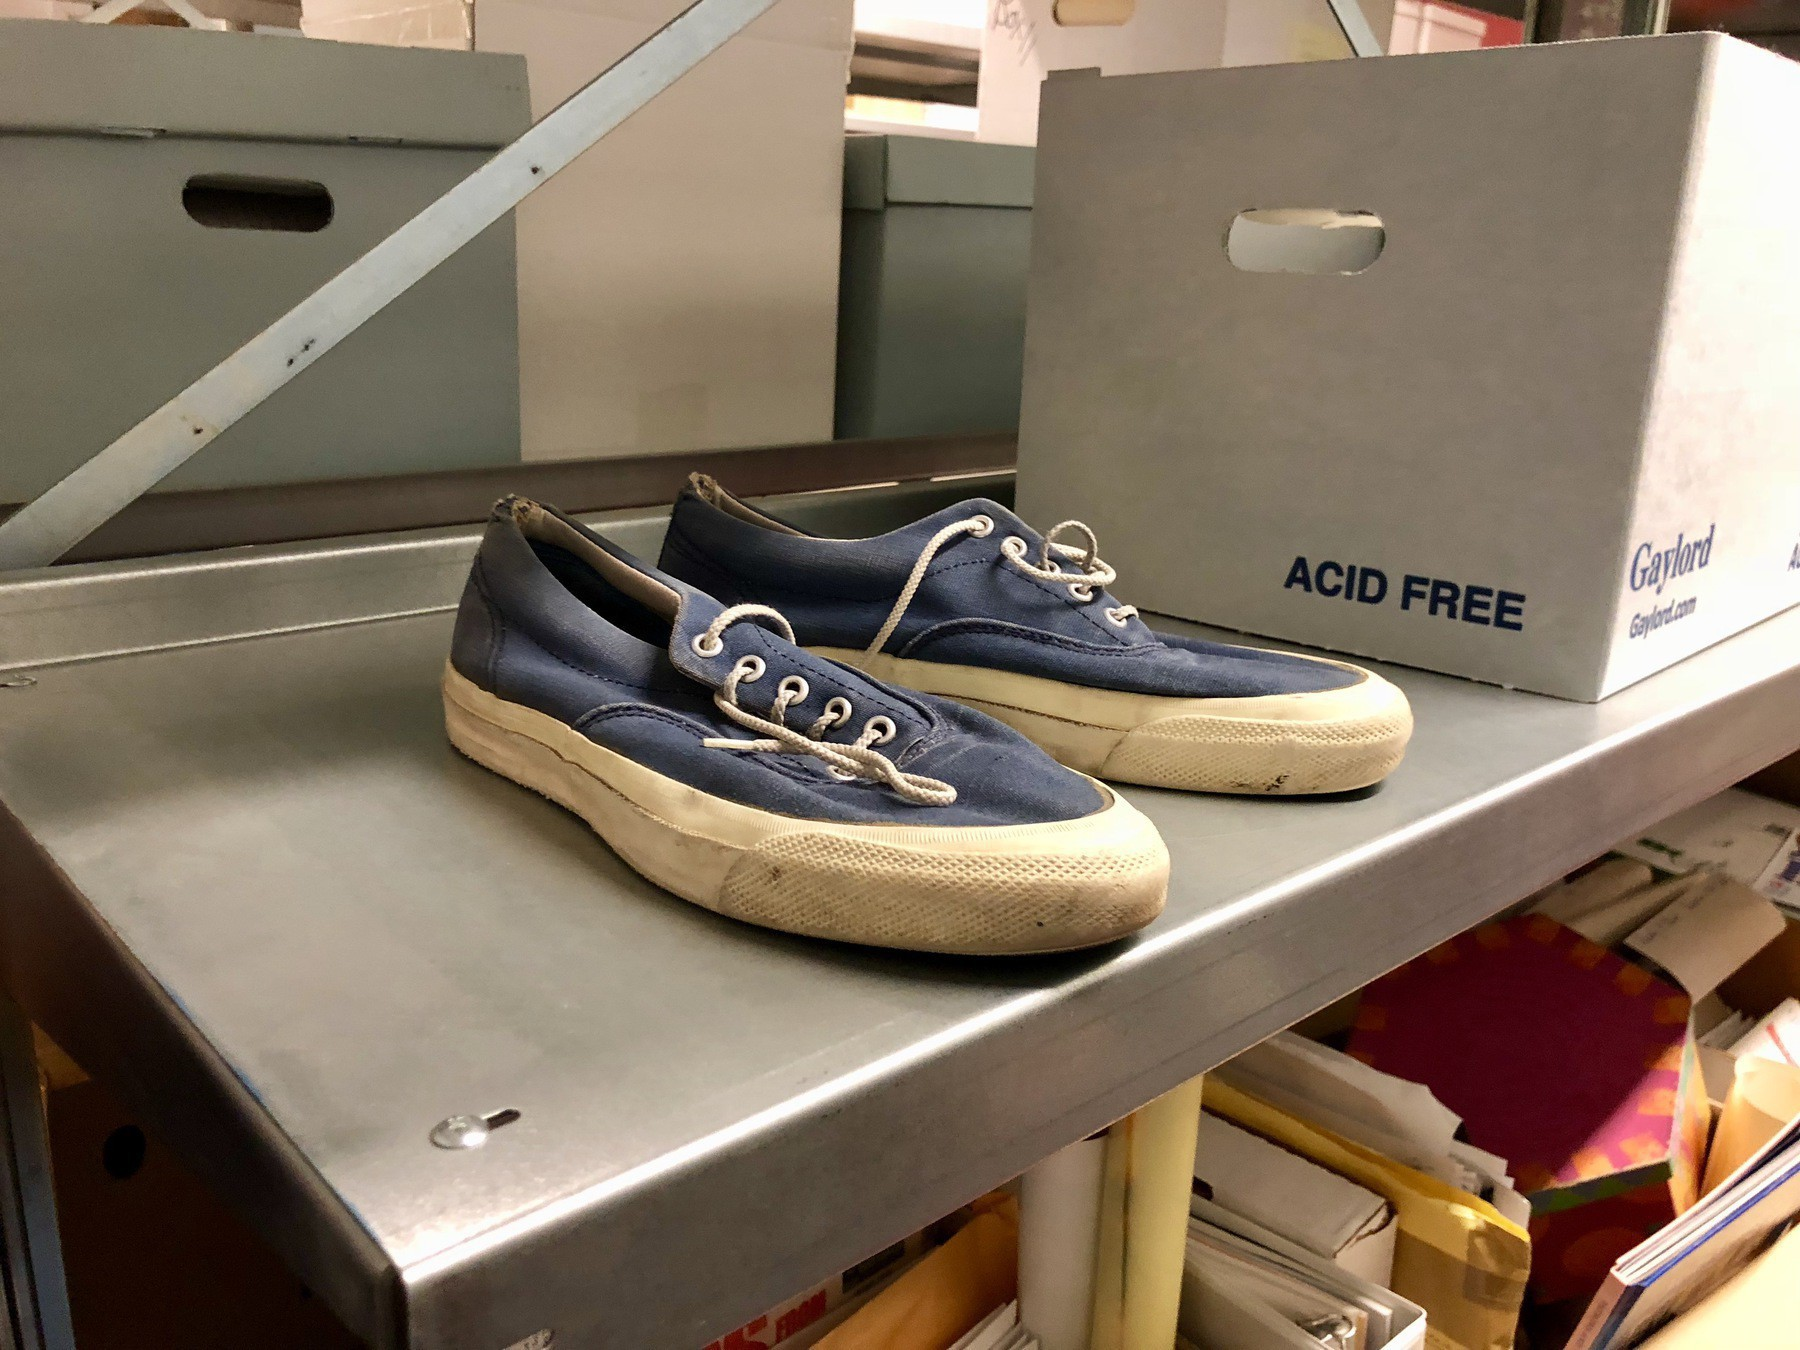 Fred Rogers (Mr. Rogers) Shoes at the Fred Rogers Center Archive